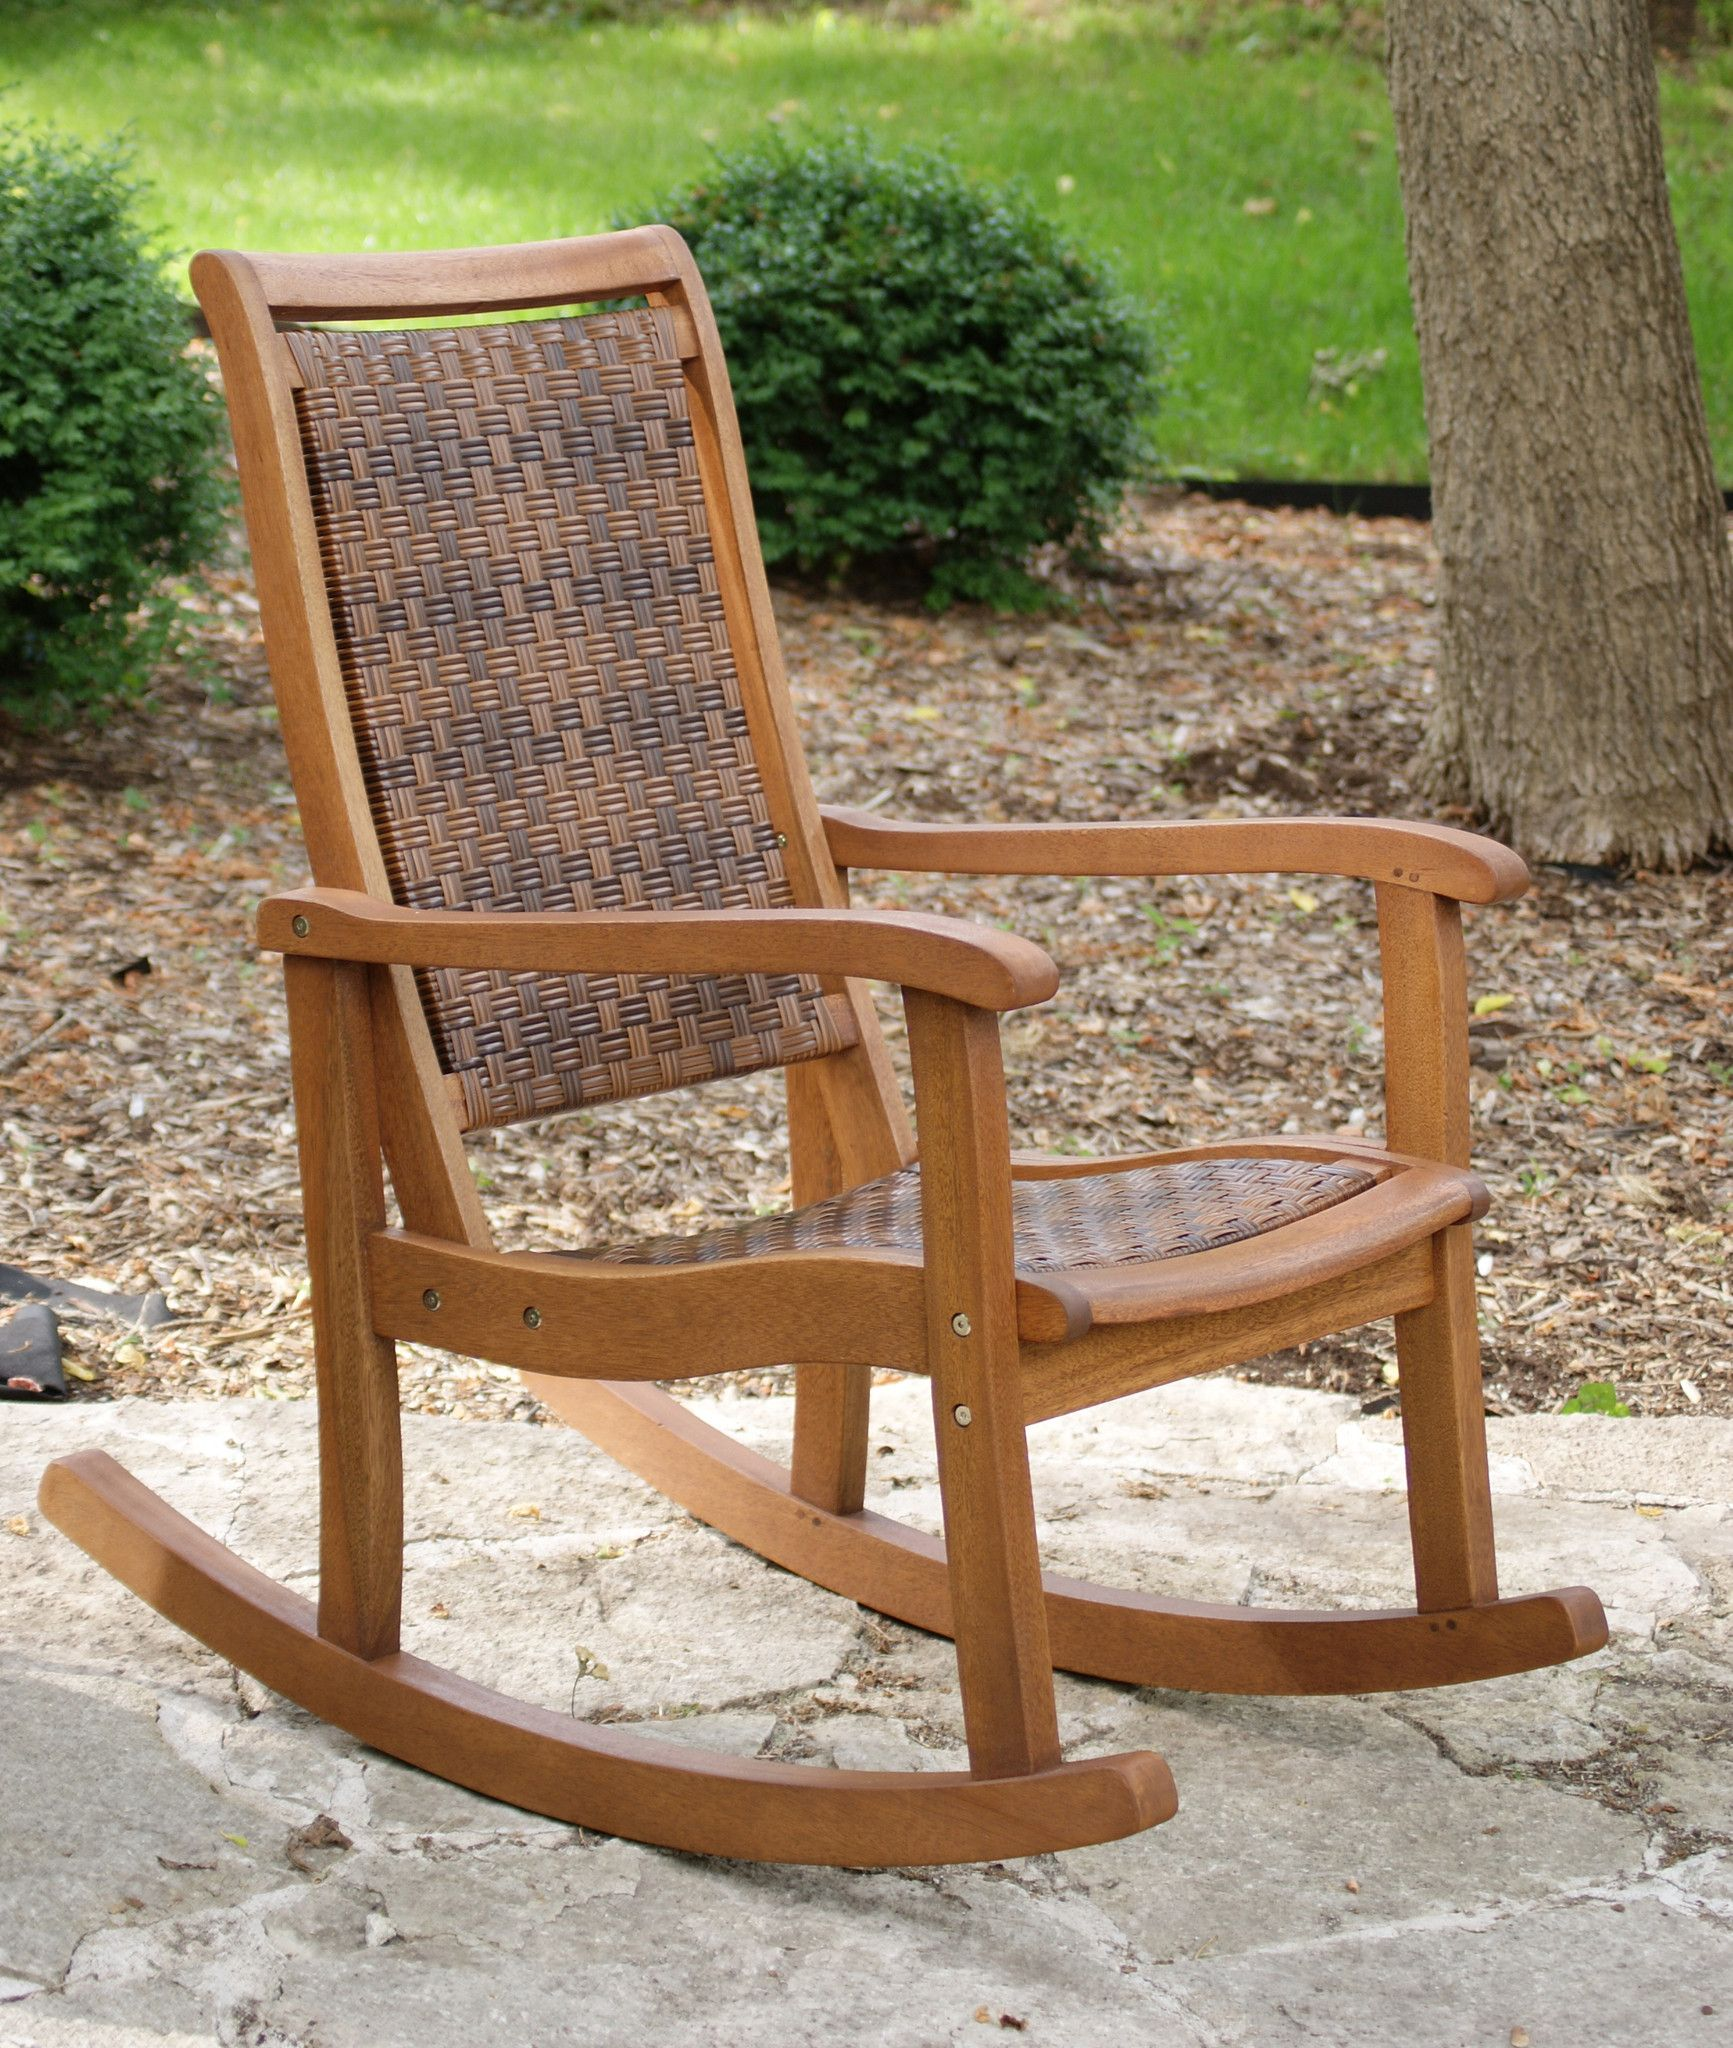 Outdoor Interiors Eucalyptus Rocking Chair | Rocking chairs ...